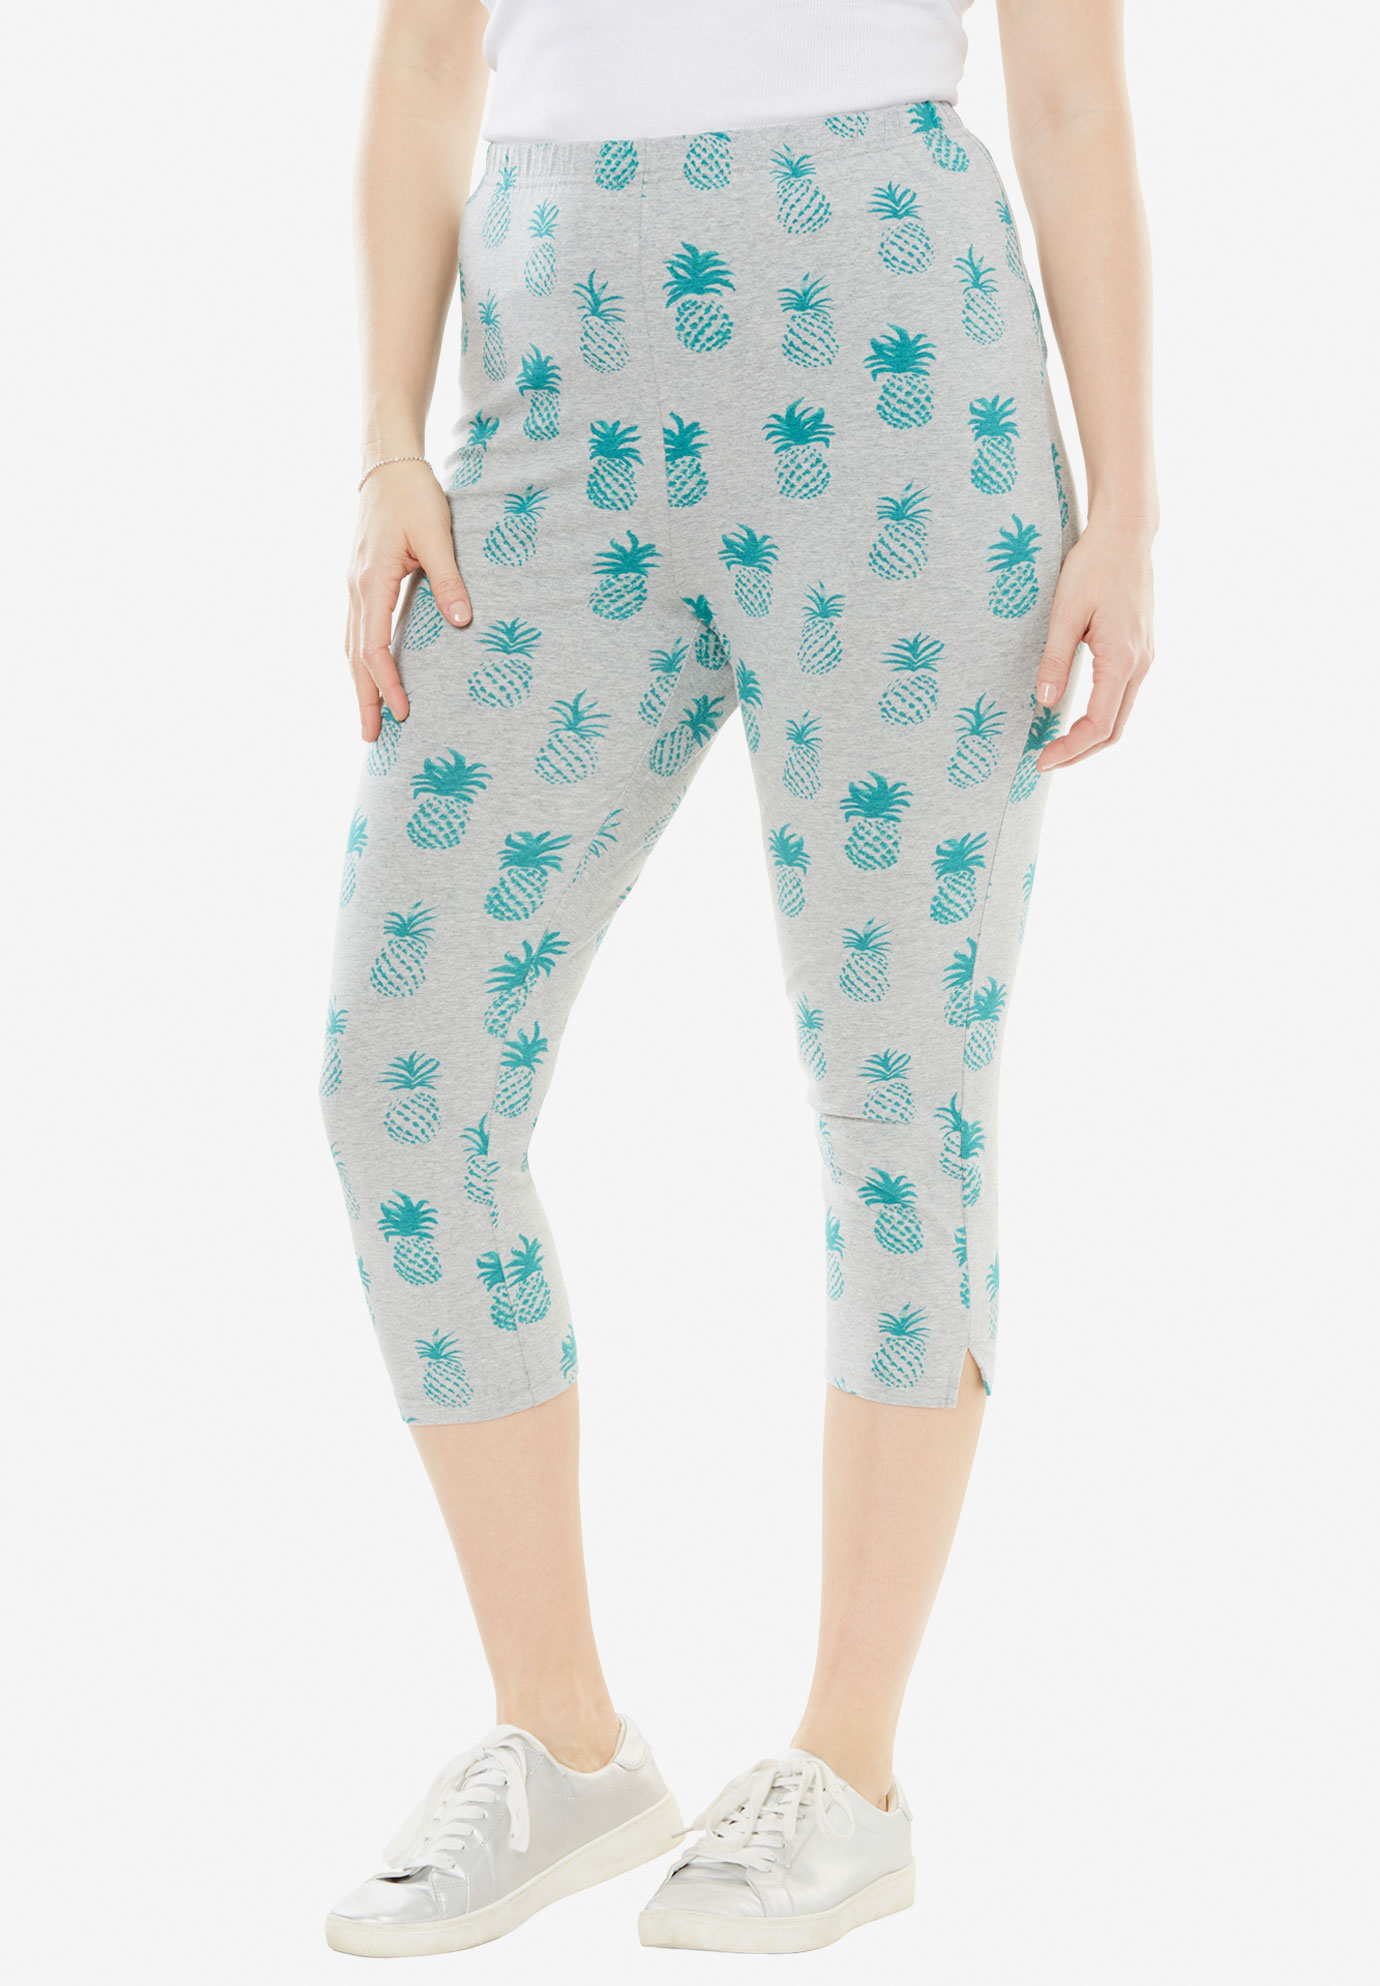 Stretch Cotton Printed Capri Legging, HEATHER GREY PINEAPPLE, hi-res